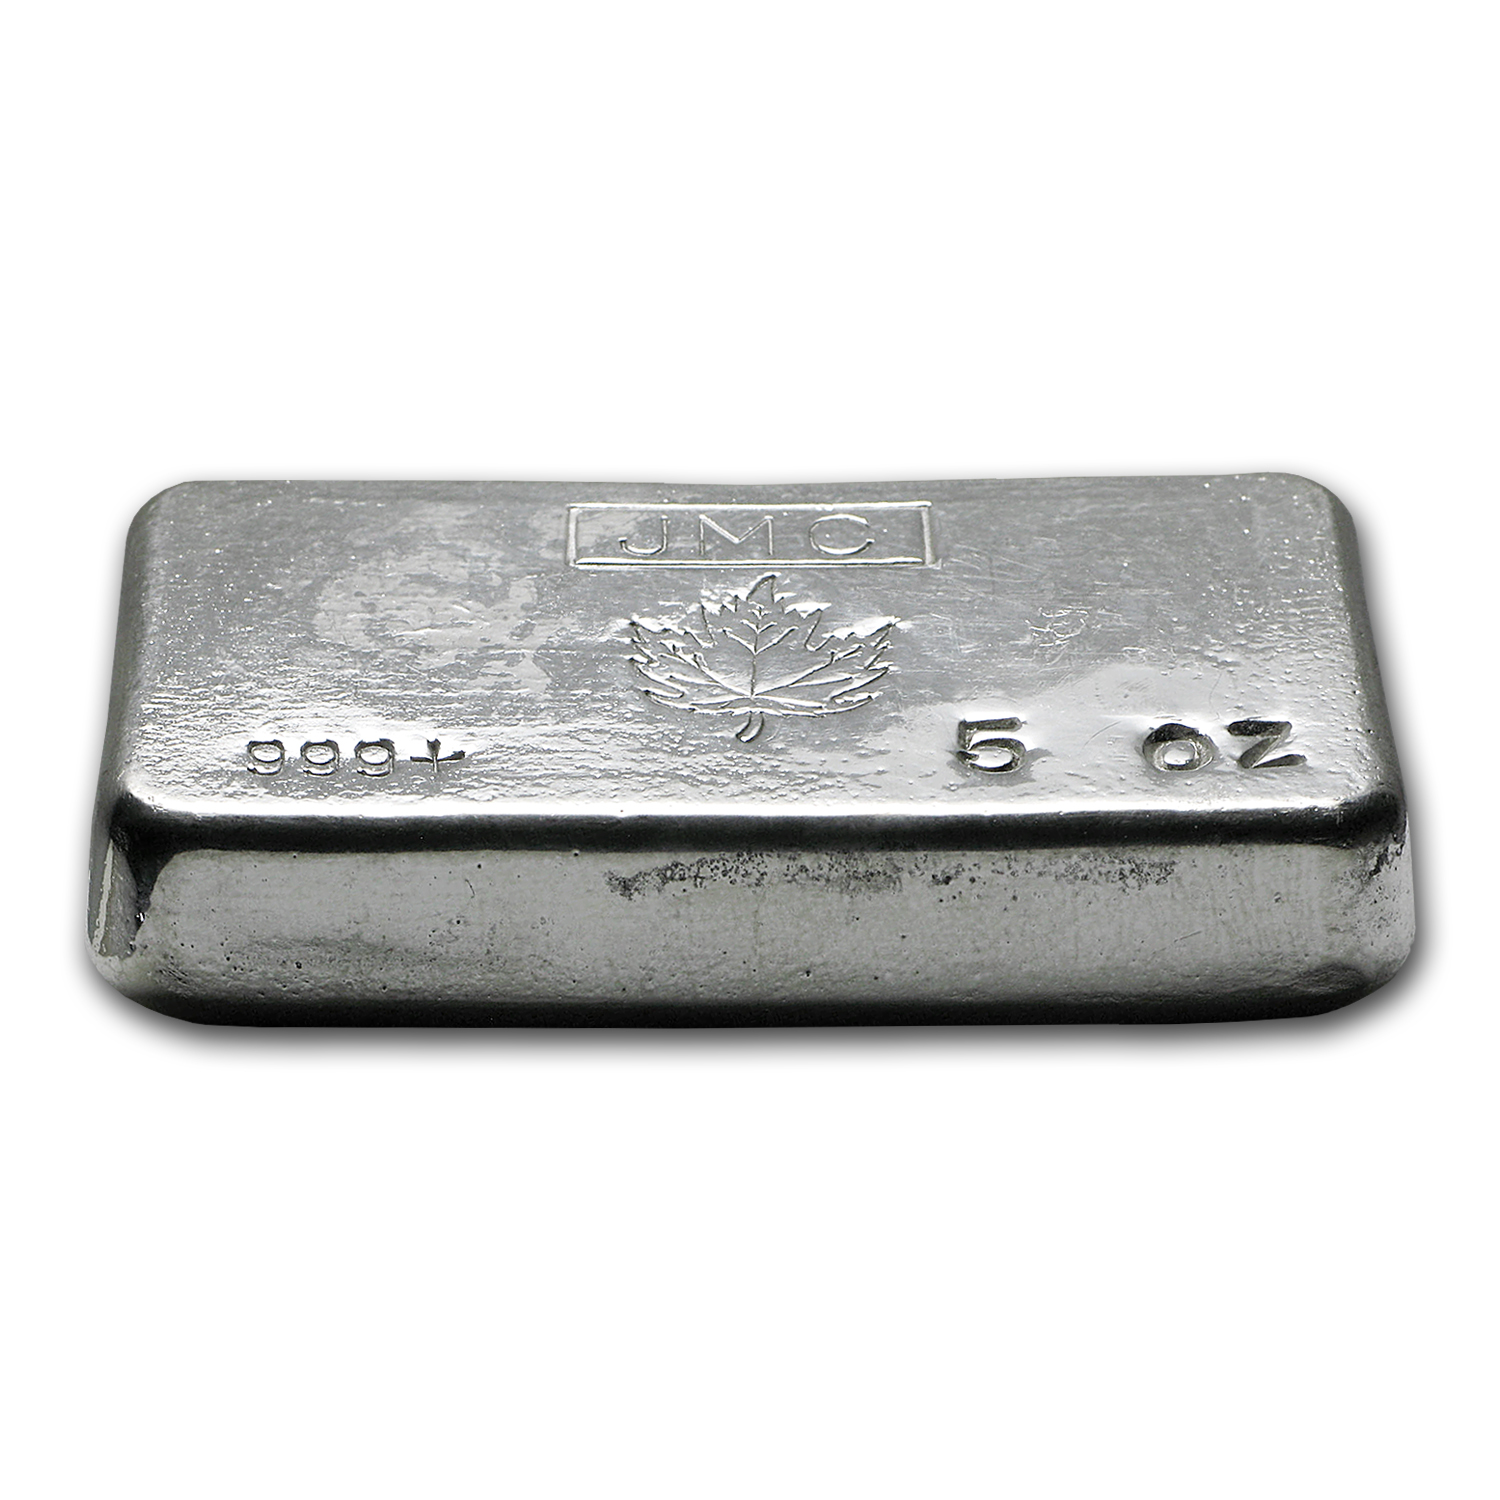 5 oz Silver Bar - Johnson Matthey (Poured/Maple Leaf)